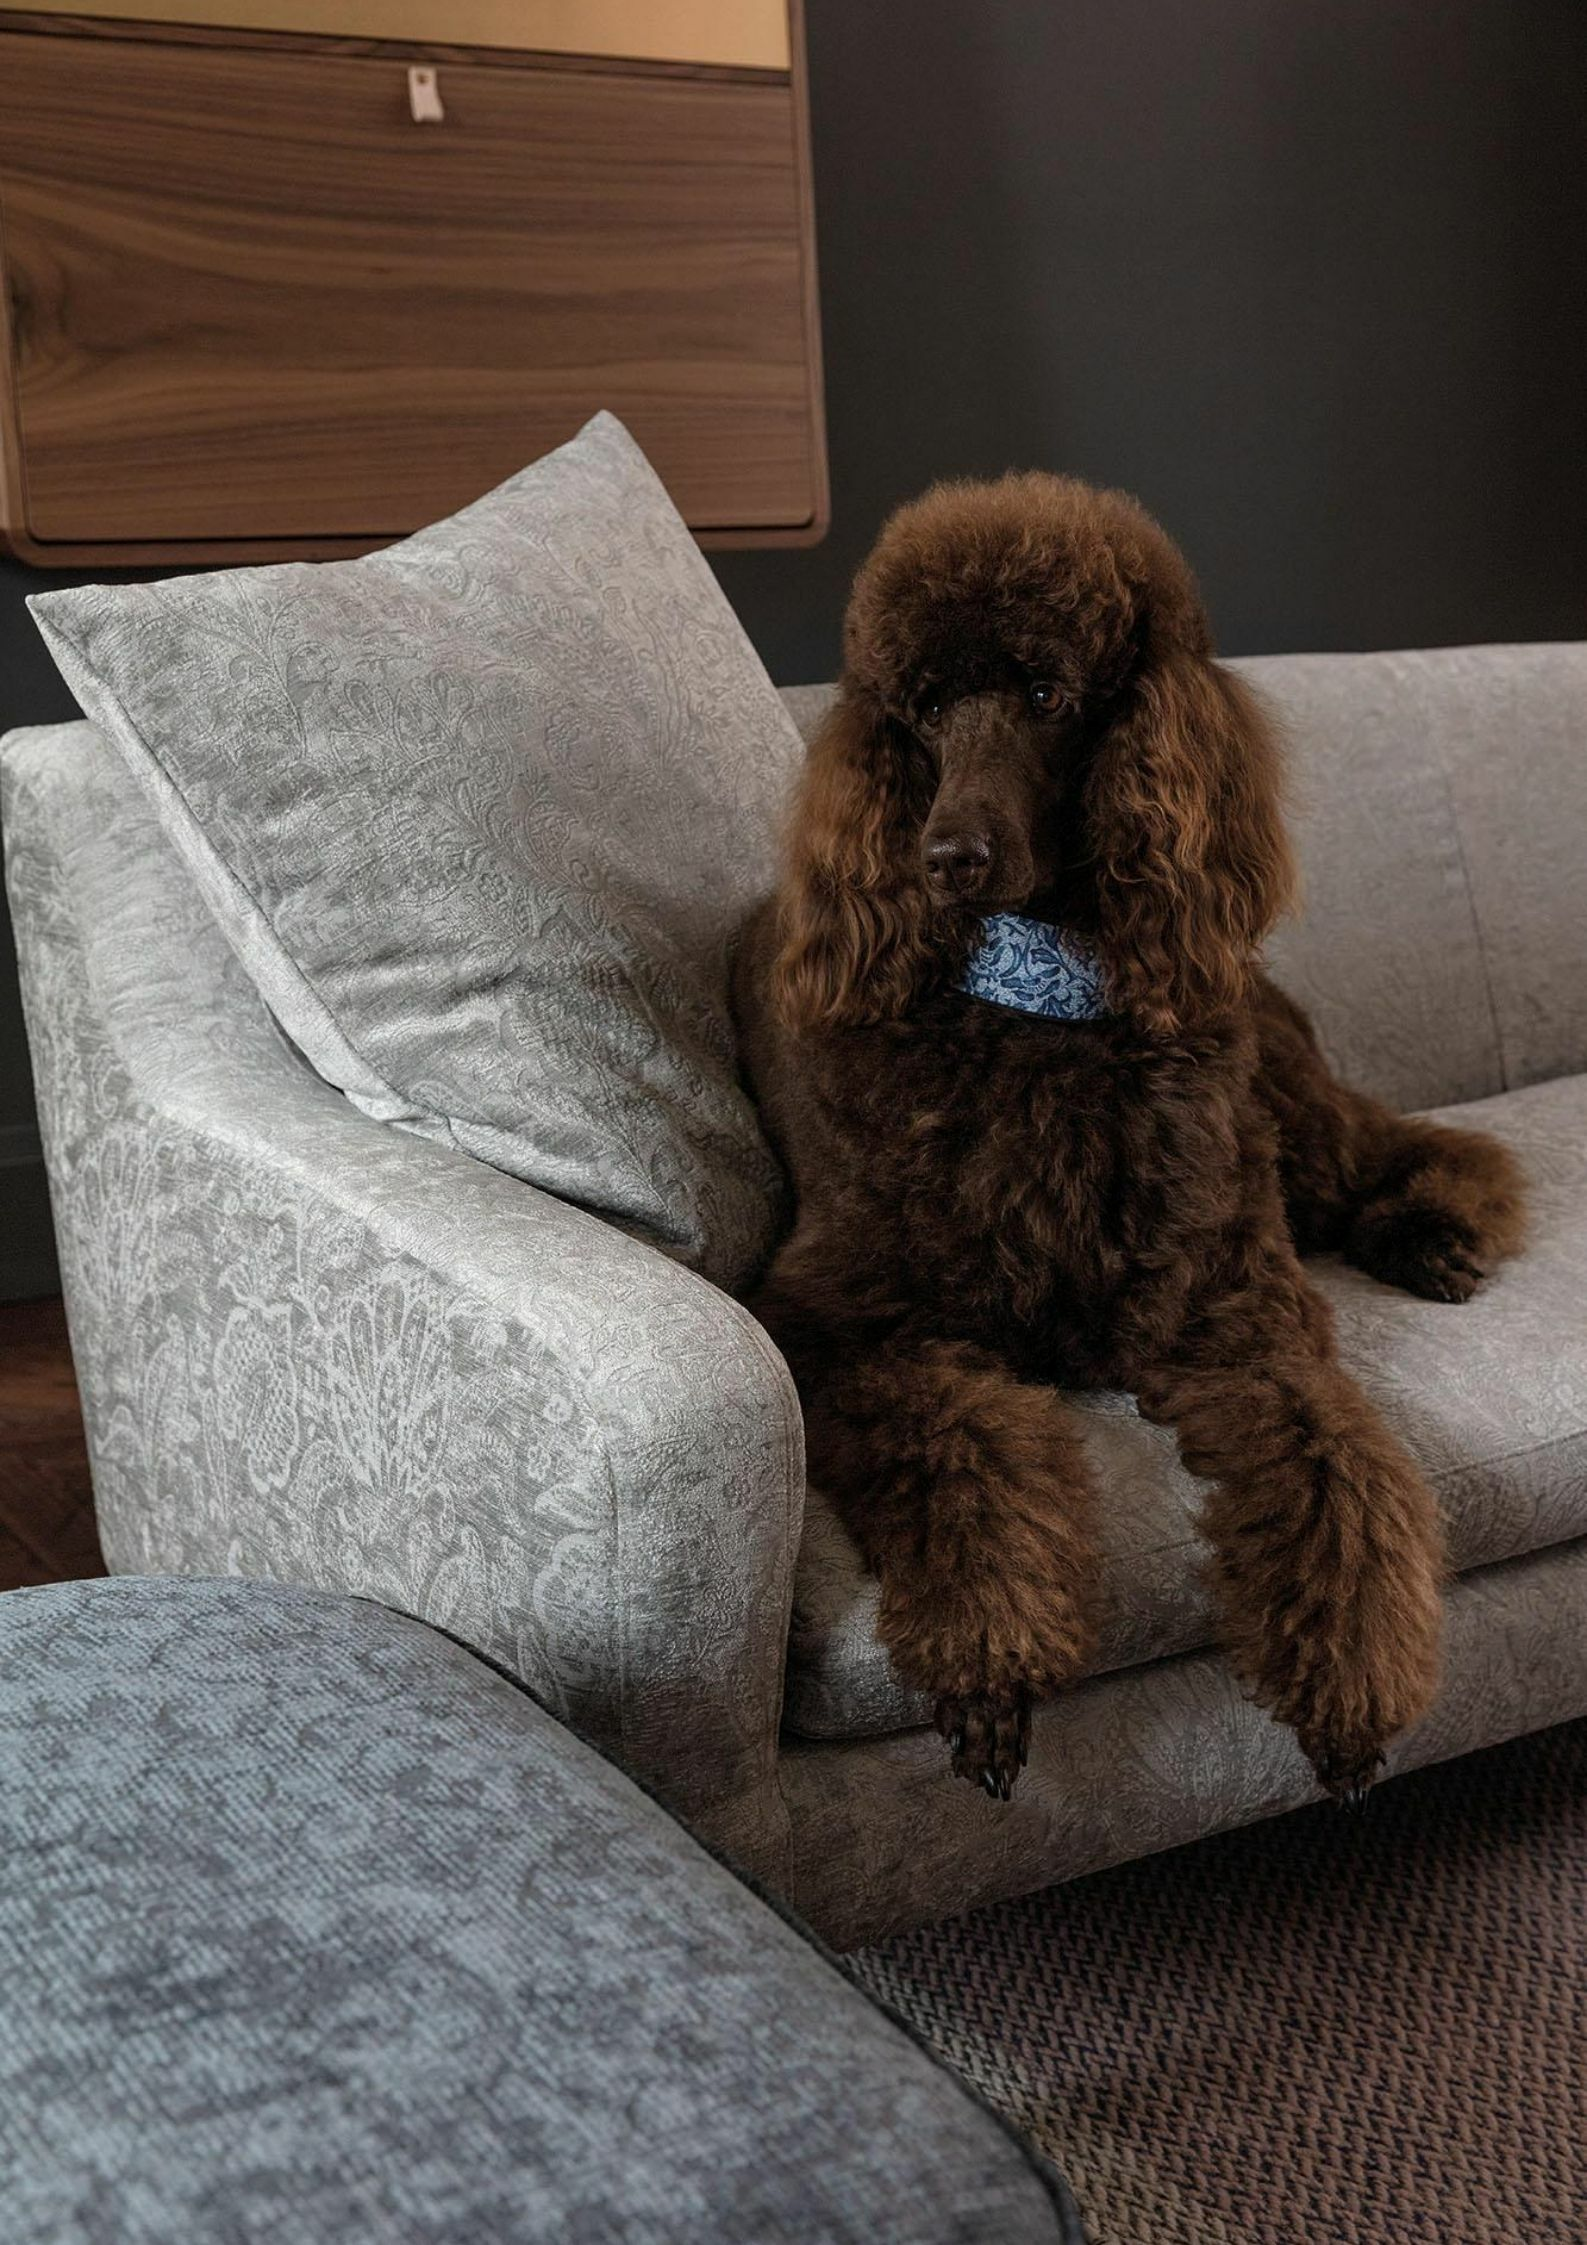 cuddly chocolate dog on a sofa upholstered in protege by fibreguard